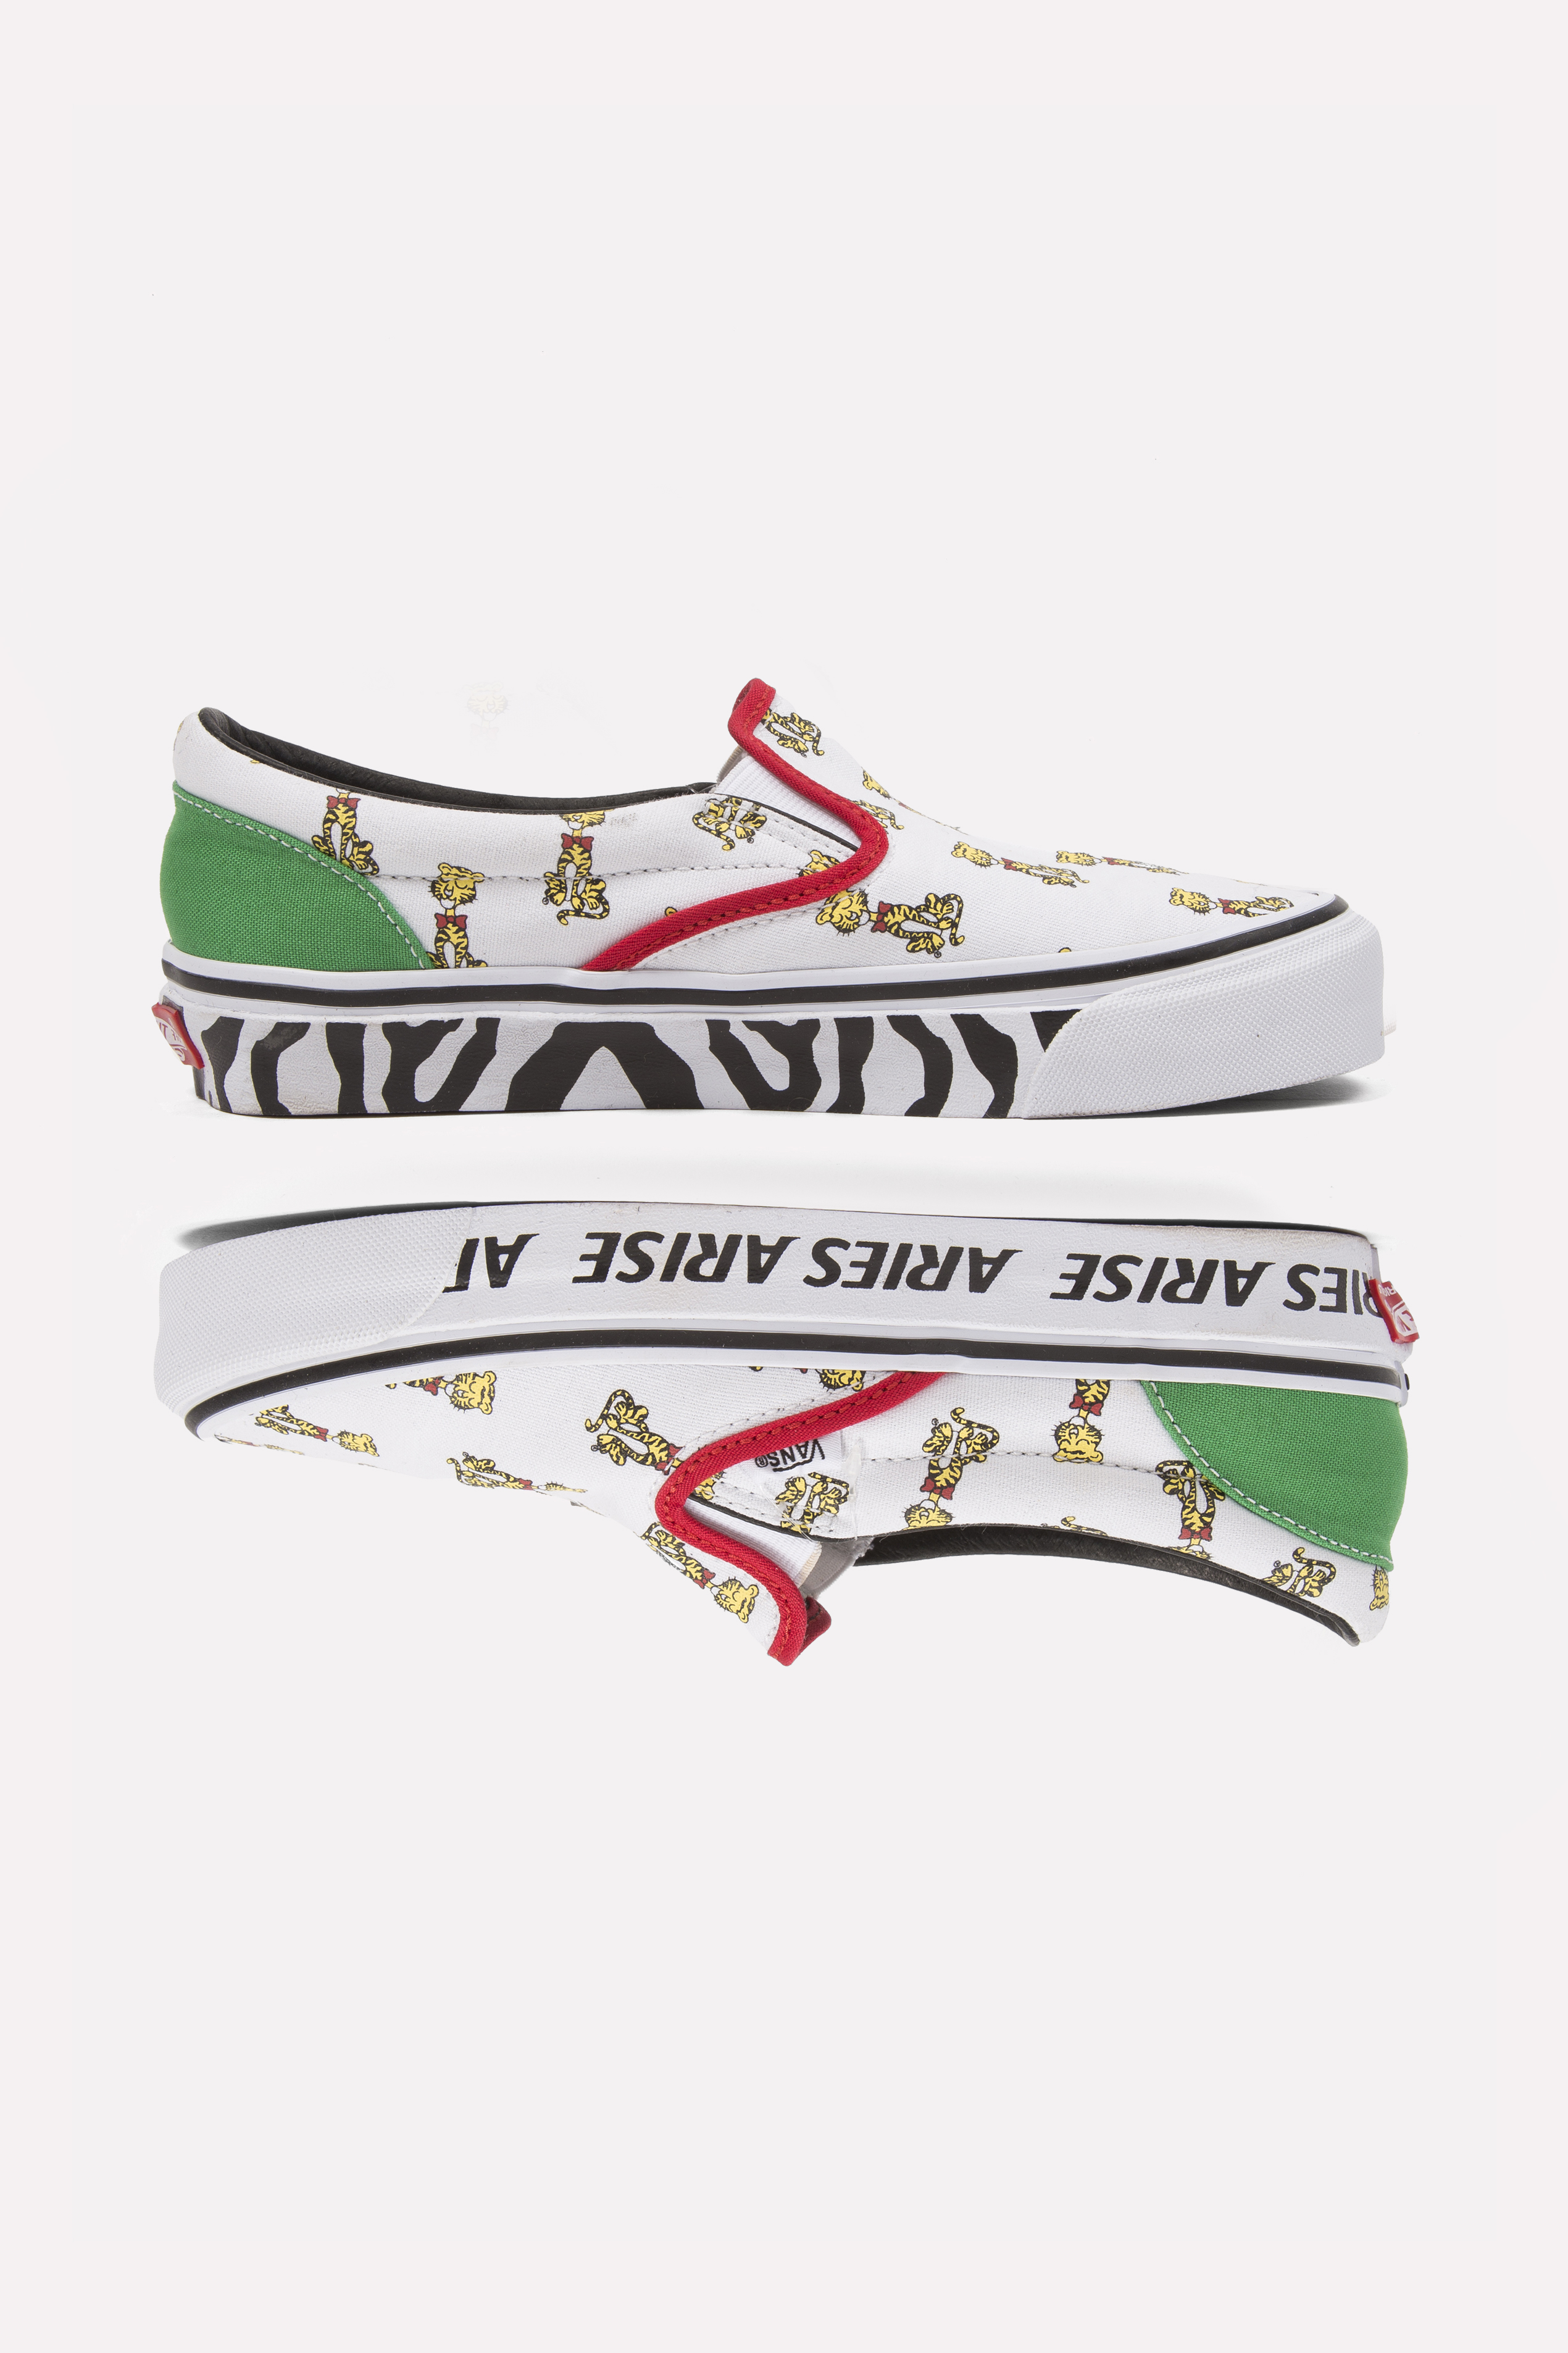 Aries and Vans Vault Collaborate on Iconic Vans Models With Uplifted Designs